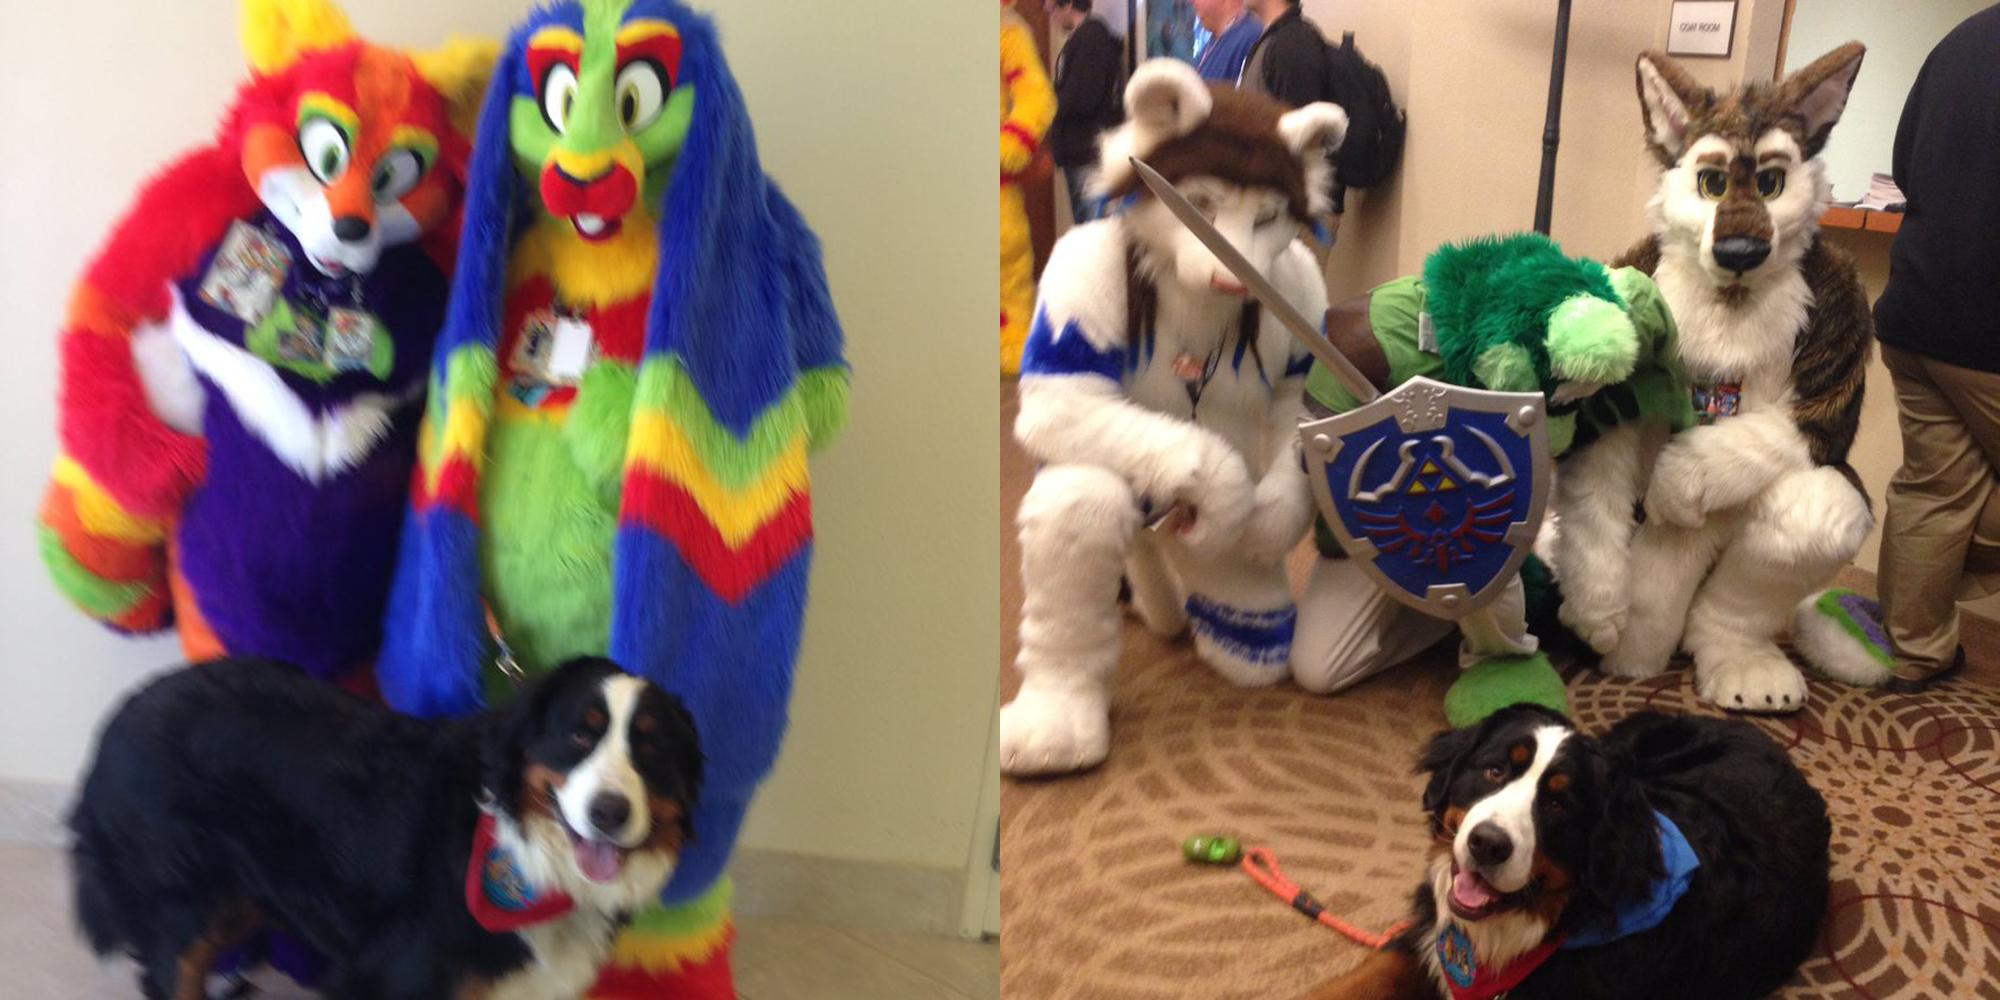 A woman went to a furry convention with her dog thinking it